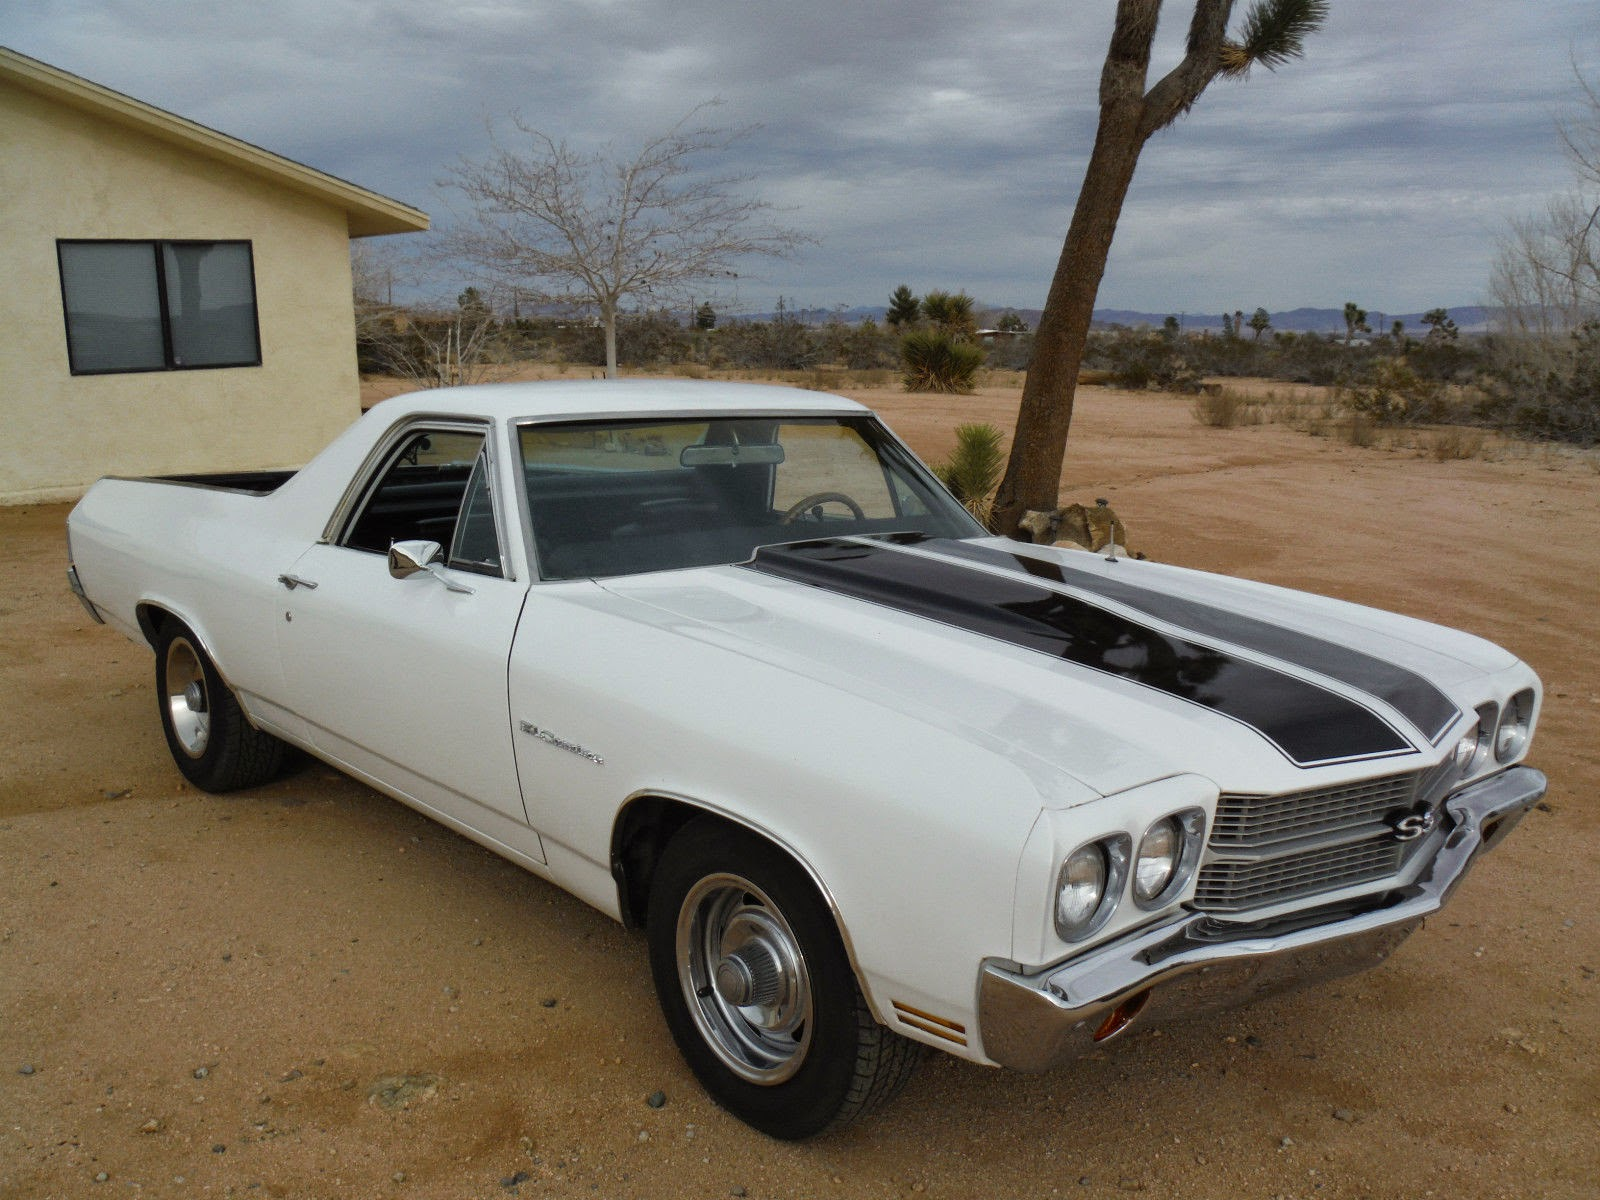 El Camino 4x4 Conversion >> All American Classic Cars: 1970 Chevrolet El Camino